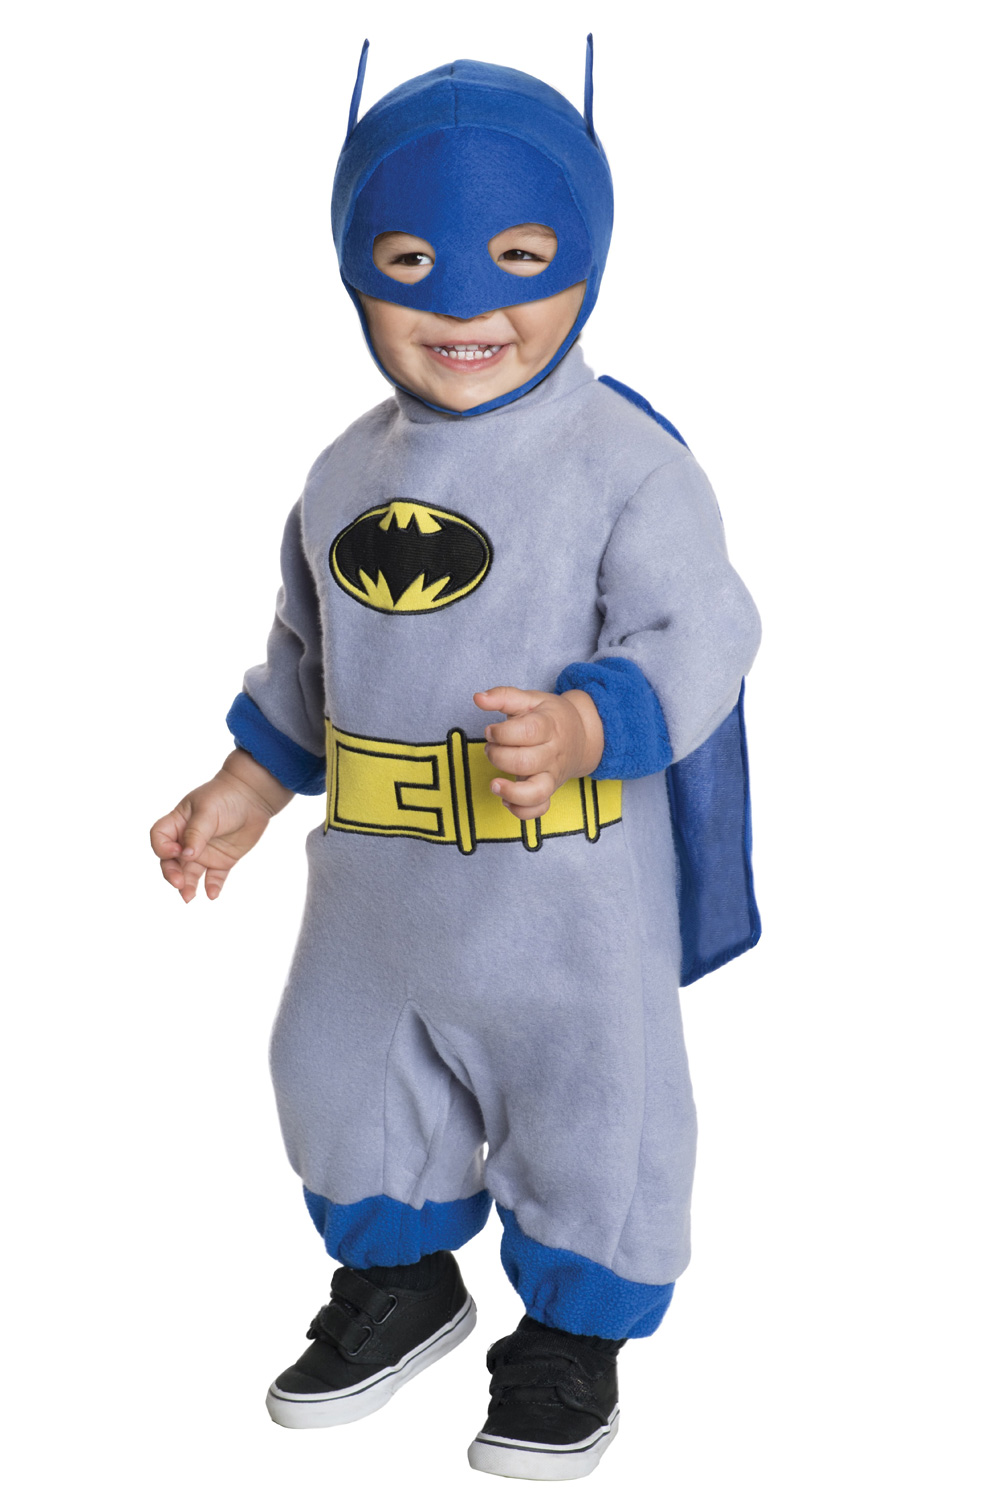 Click Here to buy Blue Batman Baby Costume from Pure Costumes